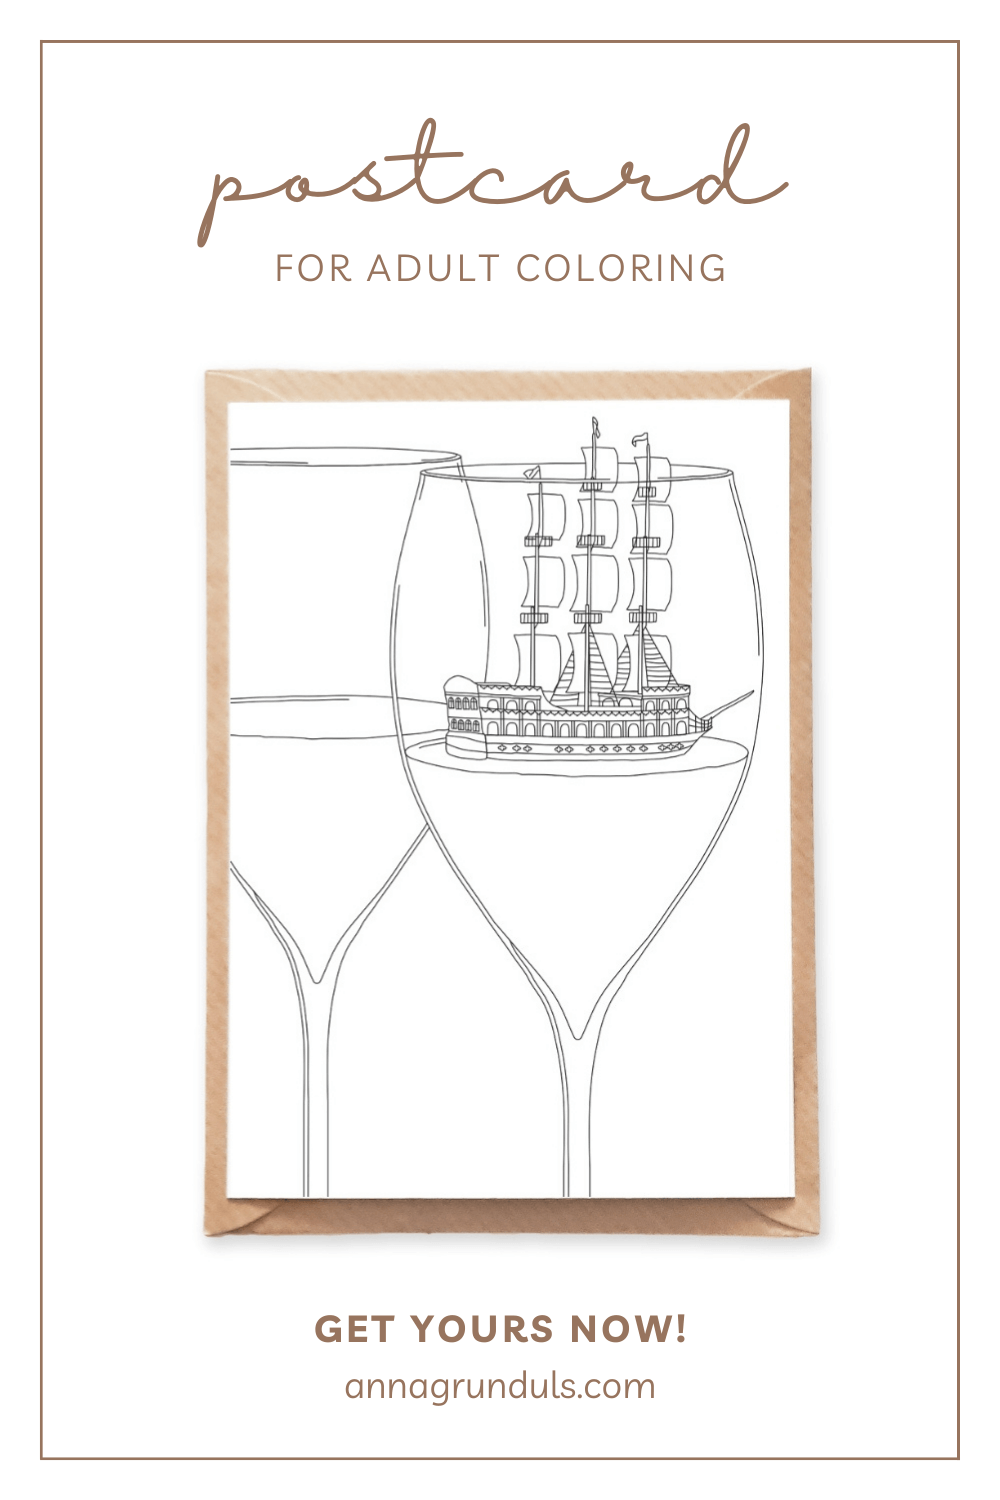 wine glass postcard for adult coloring pinterest pin